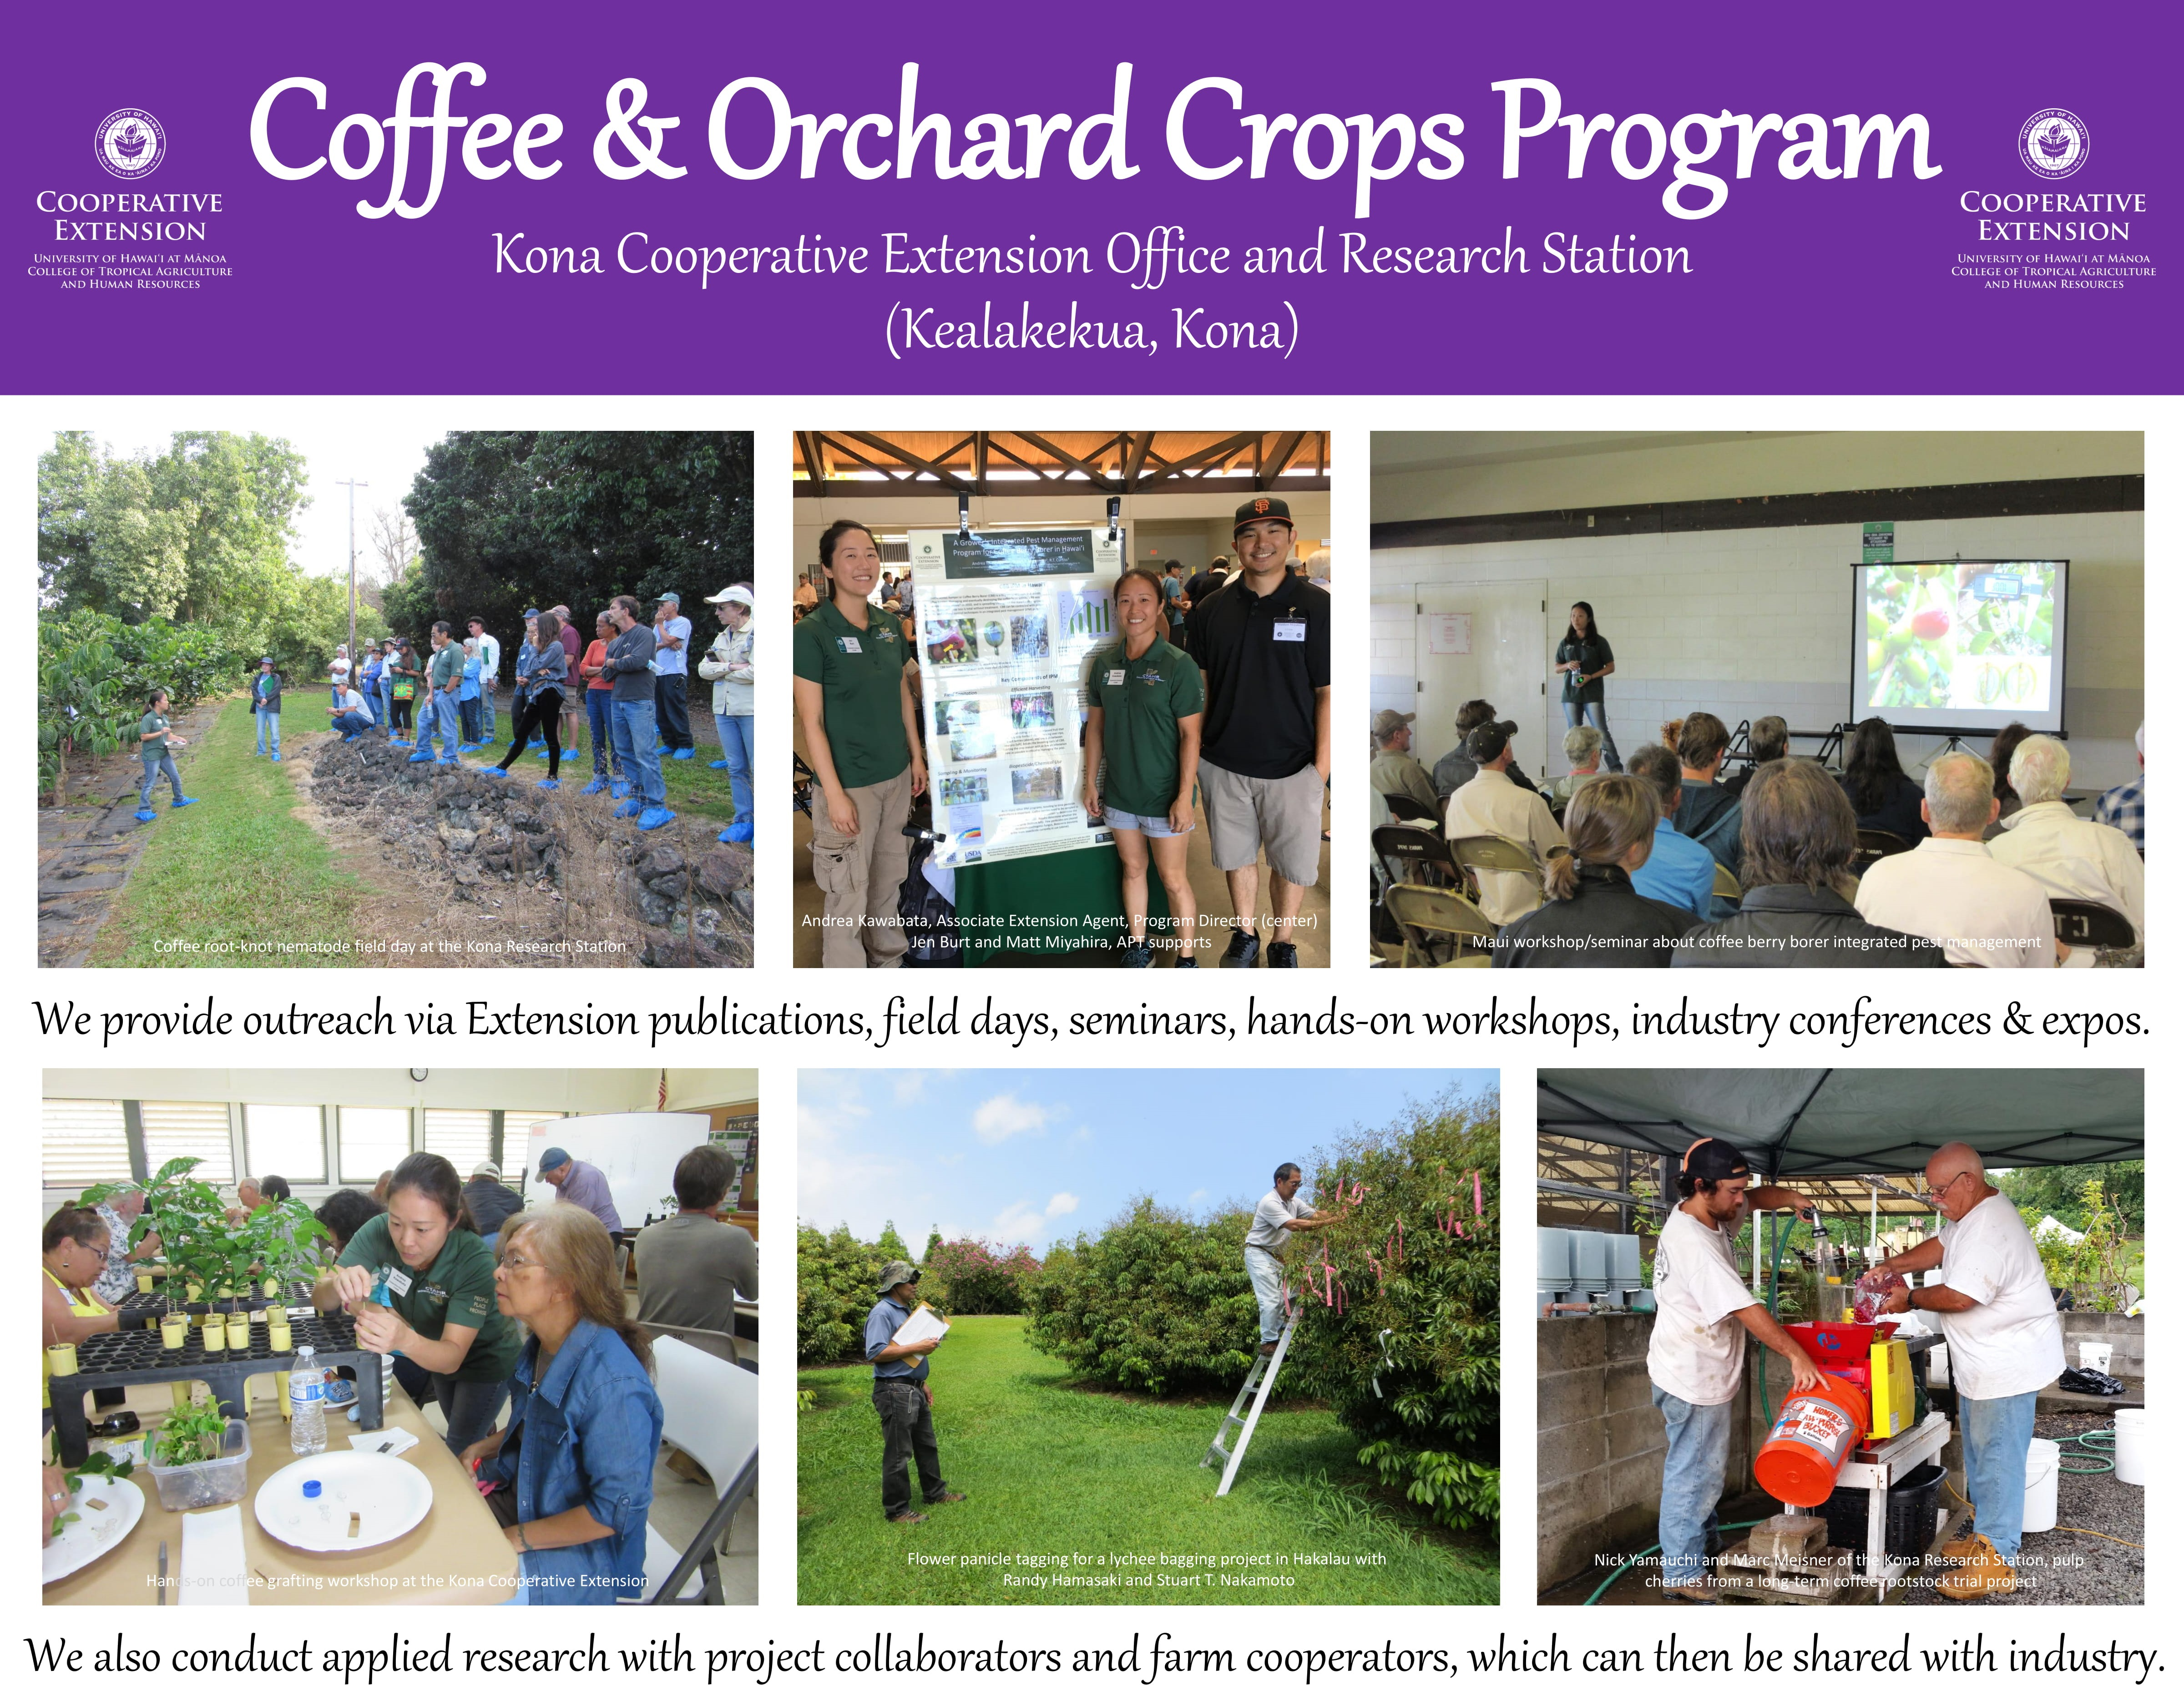 Coffee & Orchard Crops Poster